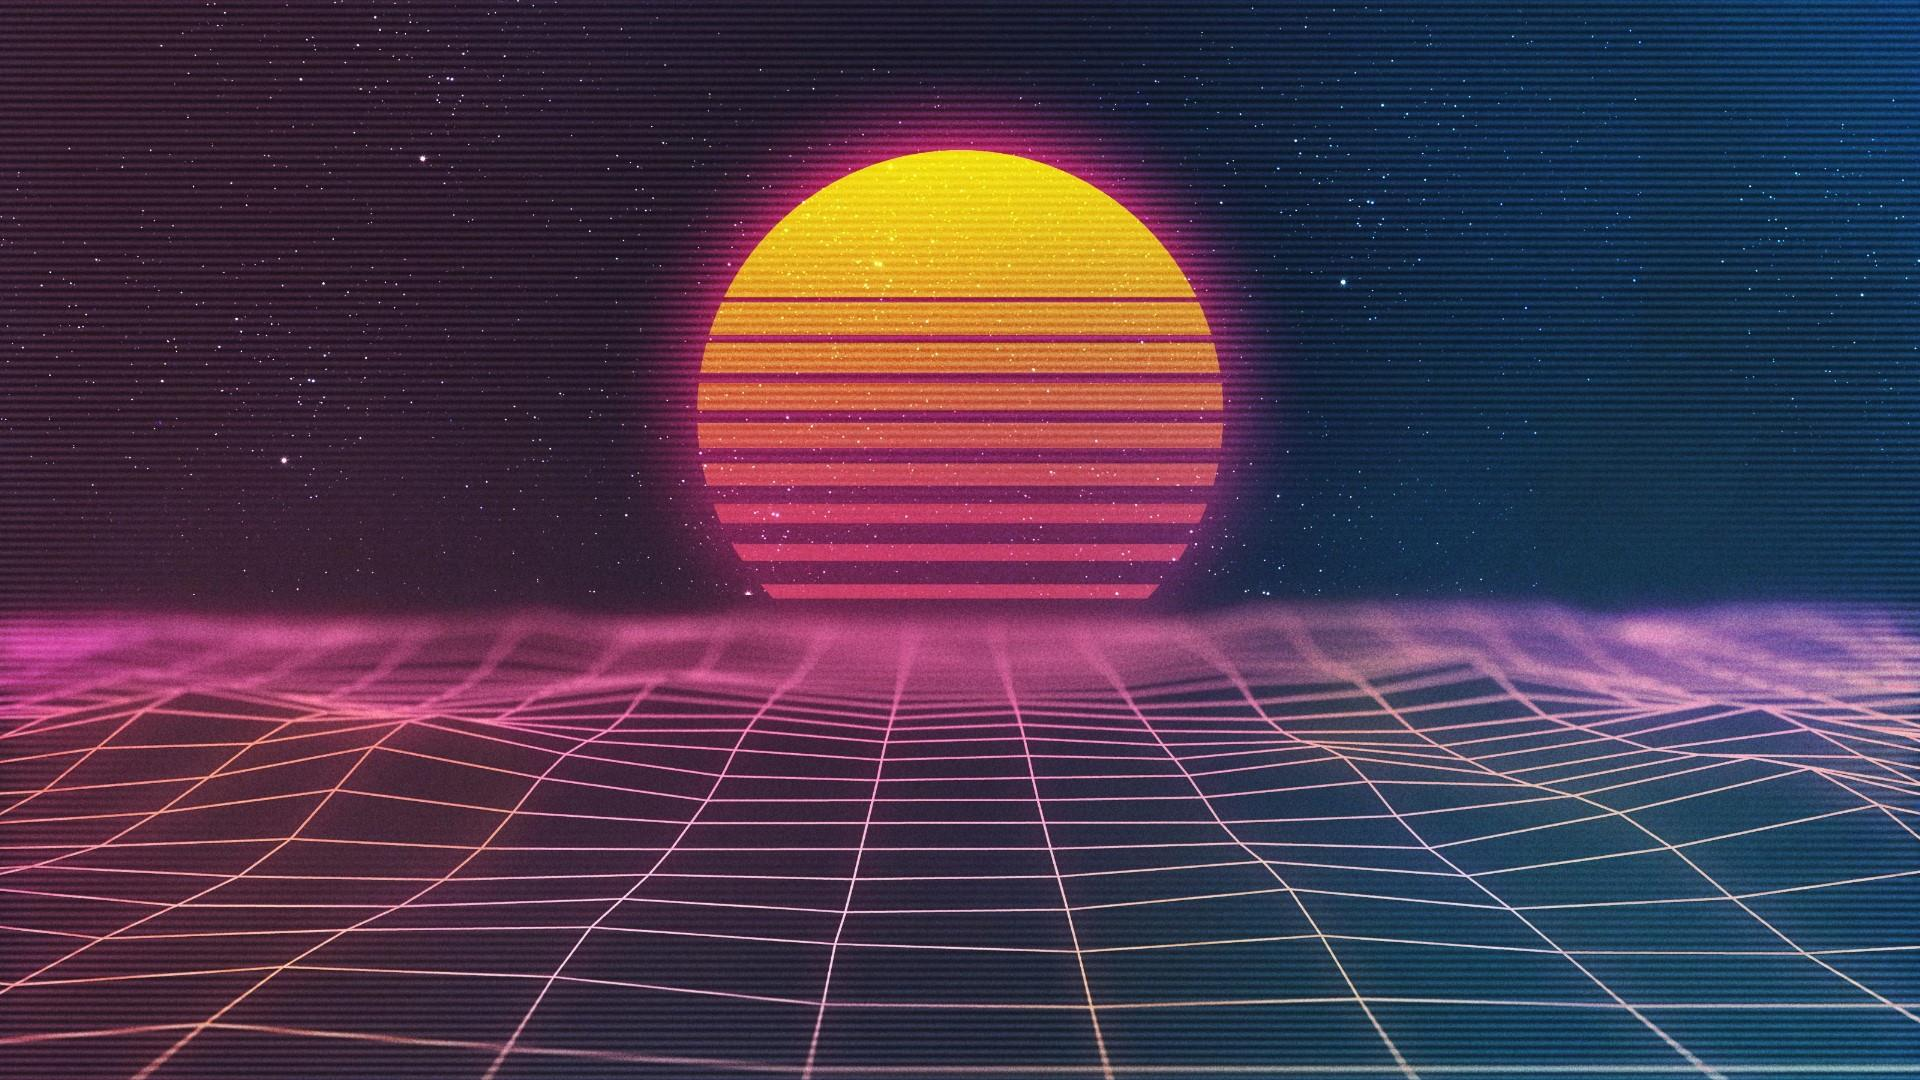 Neon retrowave art wallpaper